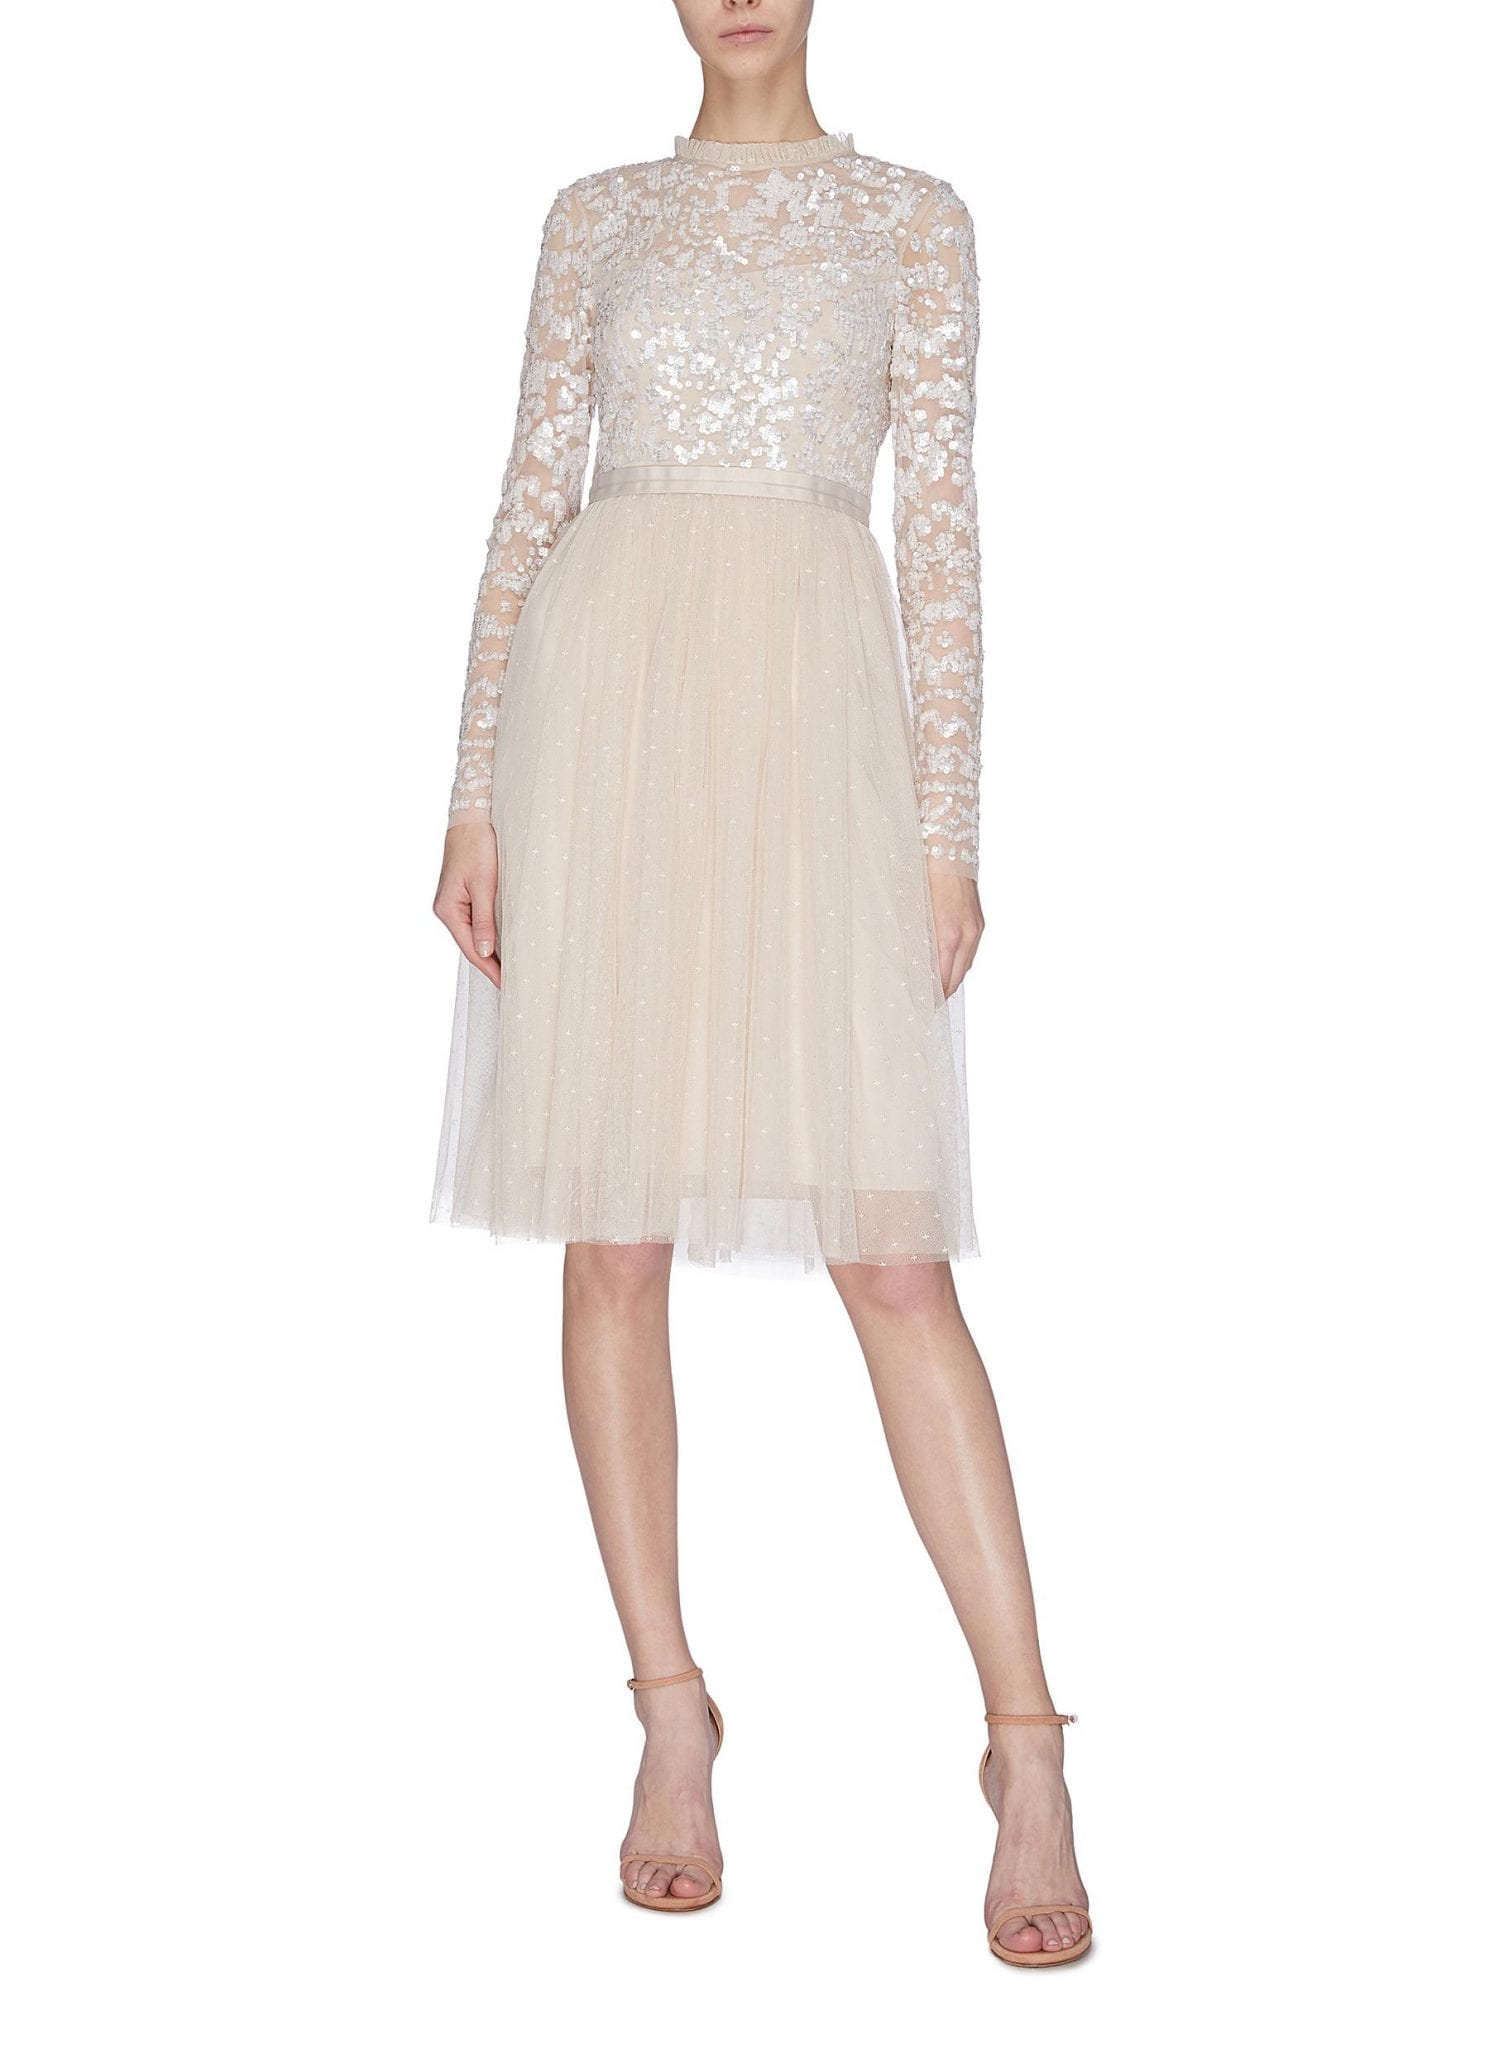 NEEDLE & THREAD 'Tempest' Sequin Embroidered Bodice Dress